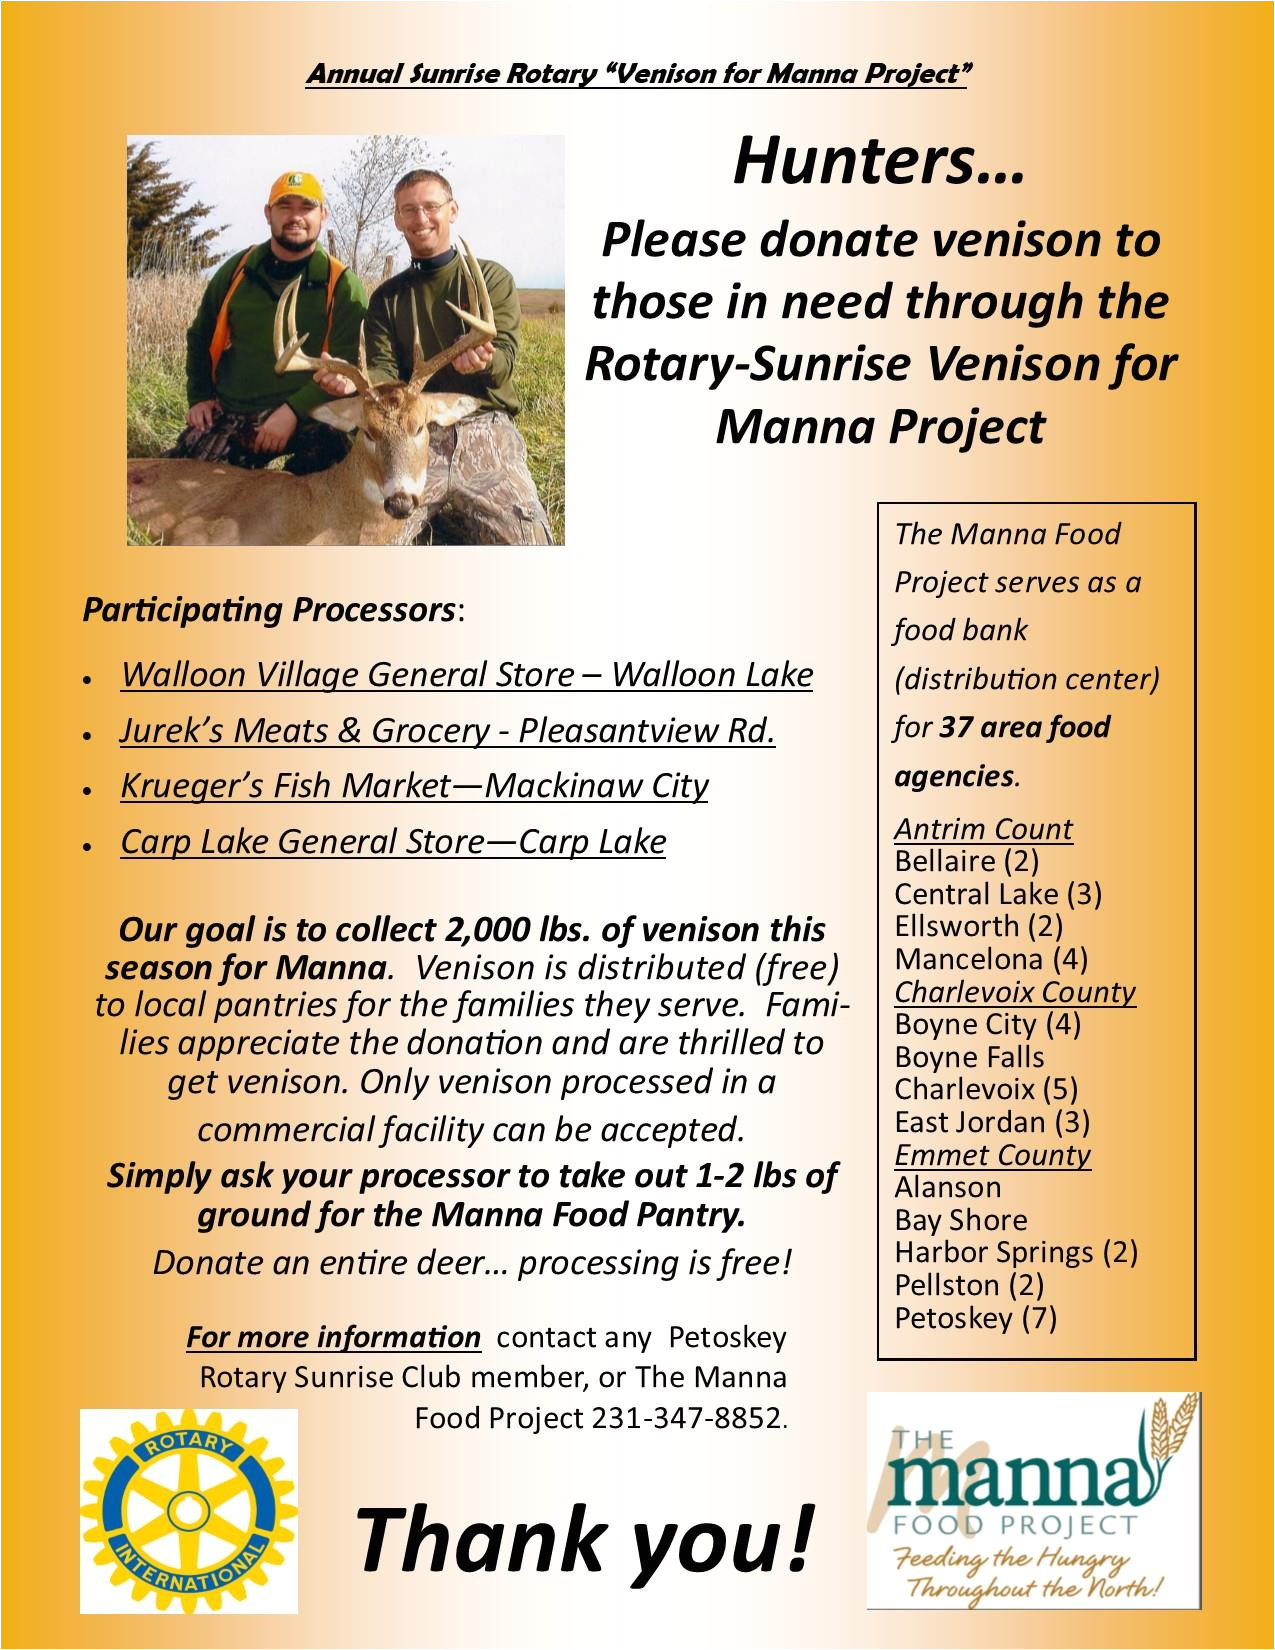 venison for manna in full swing 37 food agencies served